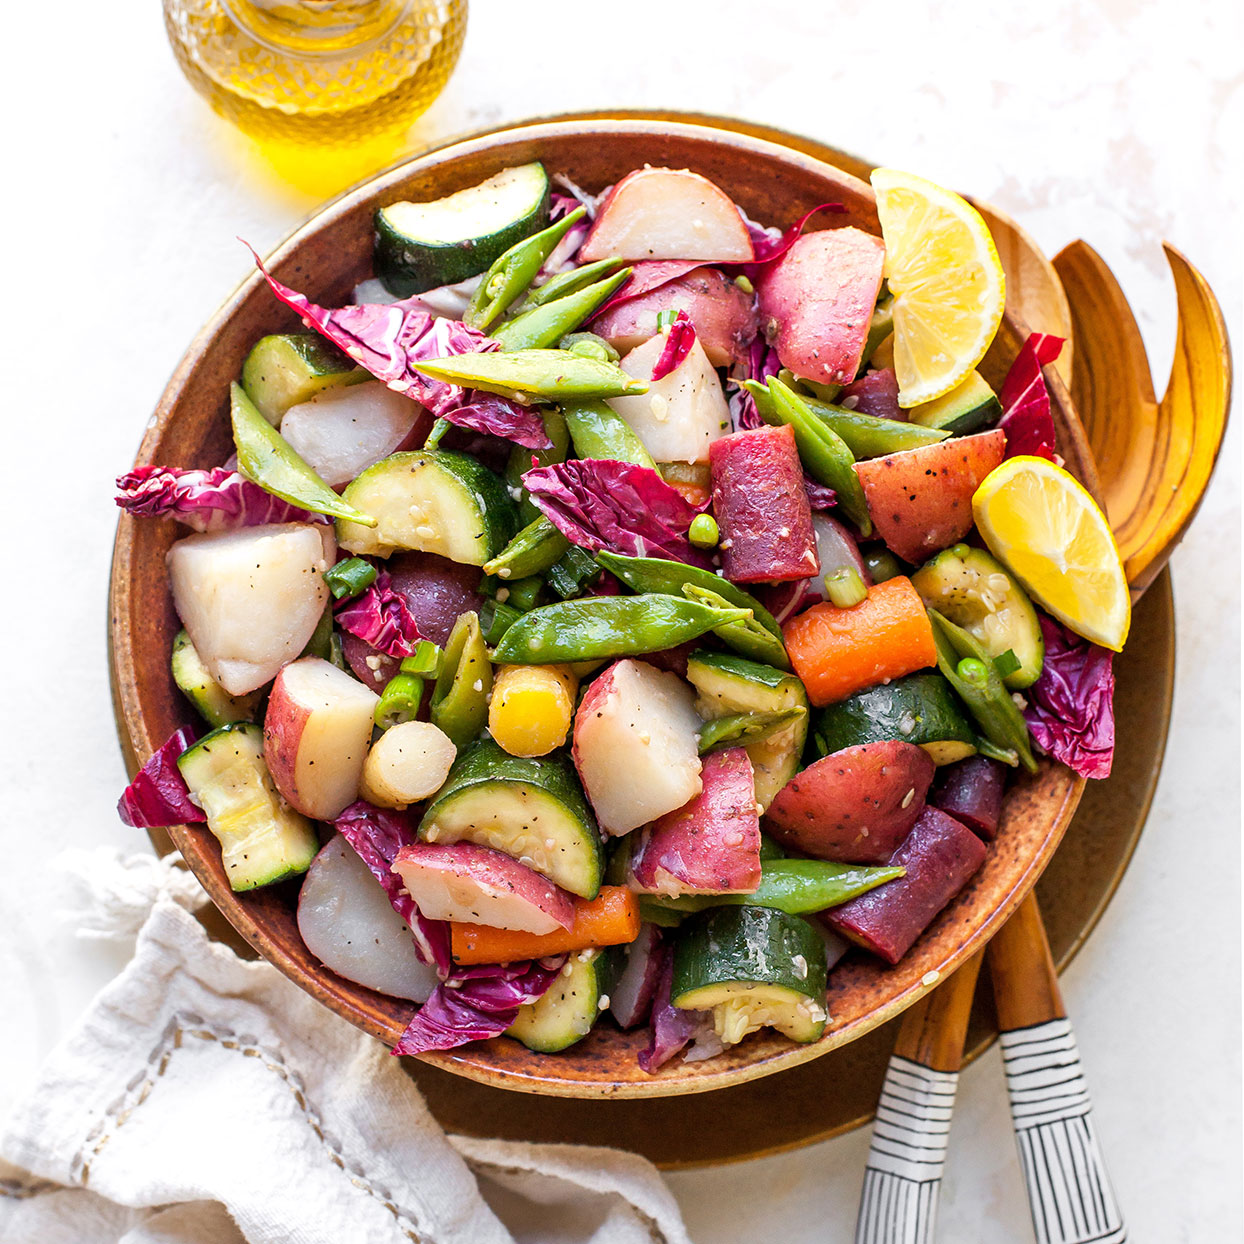 In Italy, this potato salad is known as Russian Salad. It has a thousand versions, most of them bound with plain or garlic mayonnaise. In this one, lightly steamed vegetables are splashed with vinegar while still hot, so they absorb the pungent aroma and flavor. A lemony vinaigrette binds the vegetables together. This salad looks especially pretty when made with red-skinned new potatoes and served in a cupped leaf of red radicchio. Butter lettuce or ruffled kale makes a nice presentation too.Source: EatingWell Magazine, Charter Issue 1990